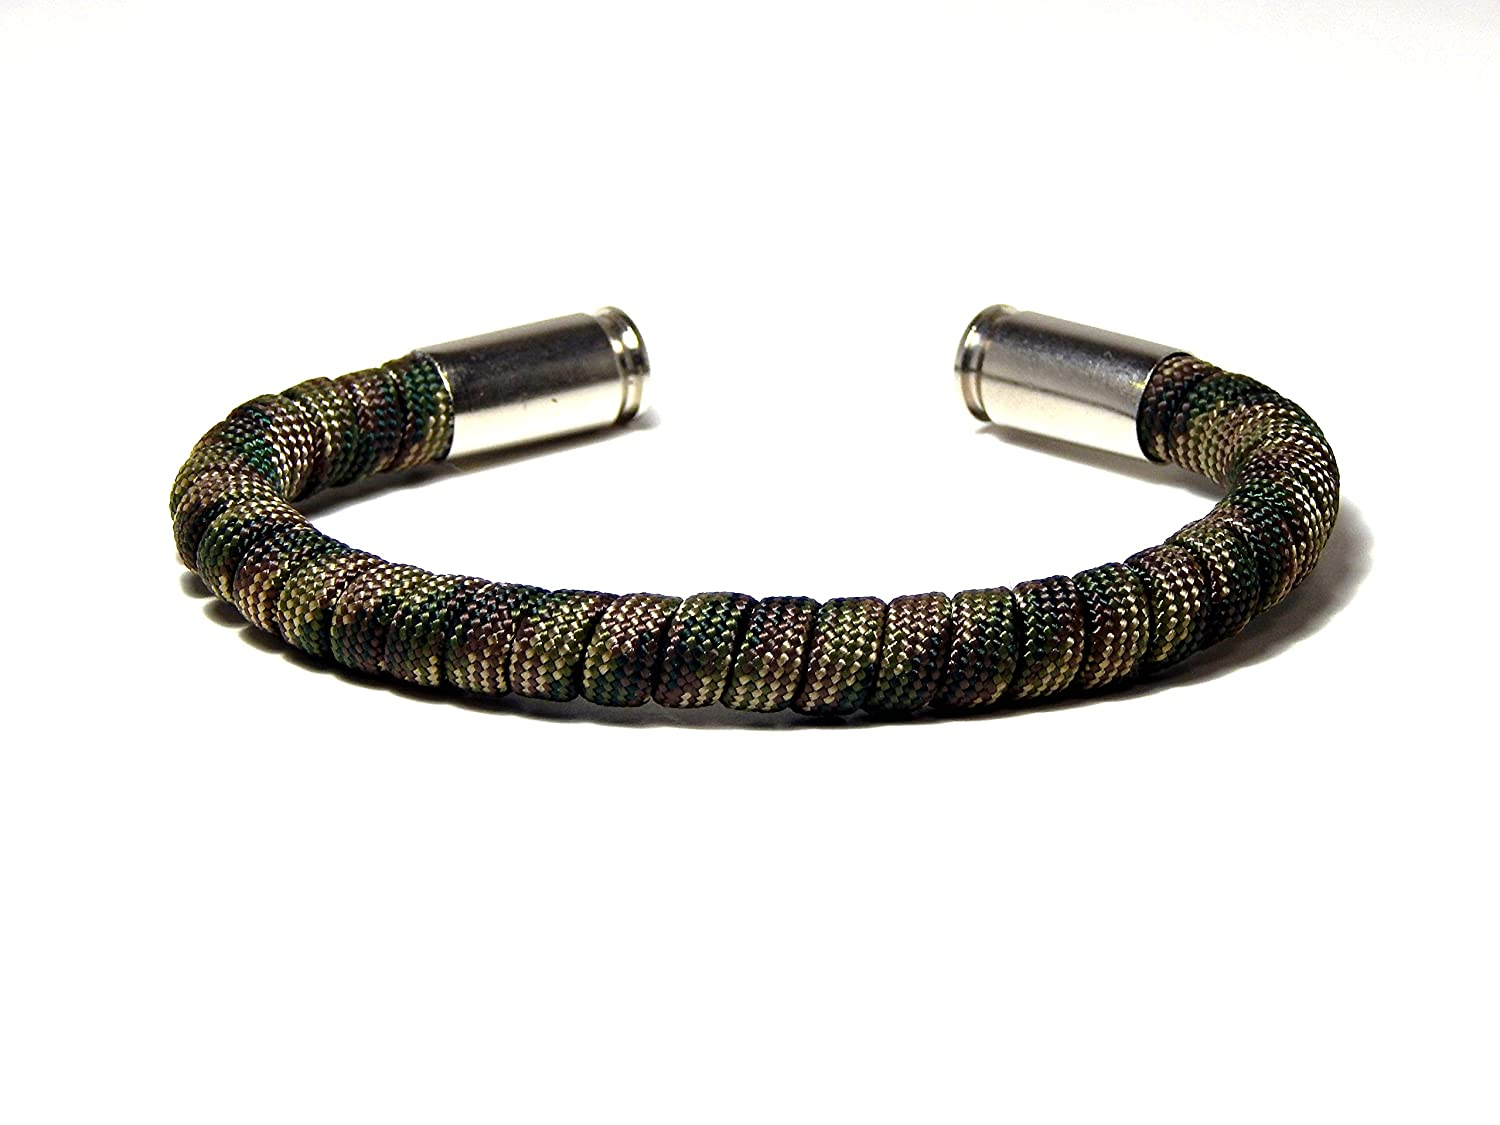 Blue Sky Outdoor Gear Bullet Bracelet Camo Paracord 9 mm Nickel Casing